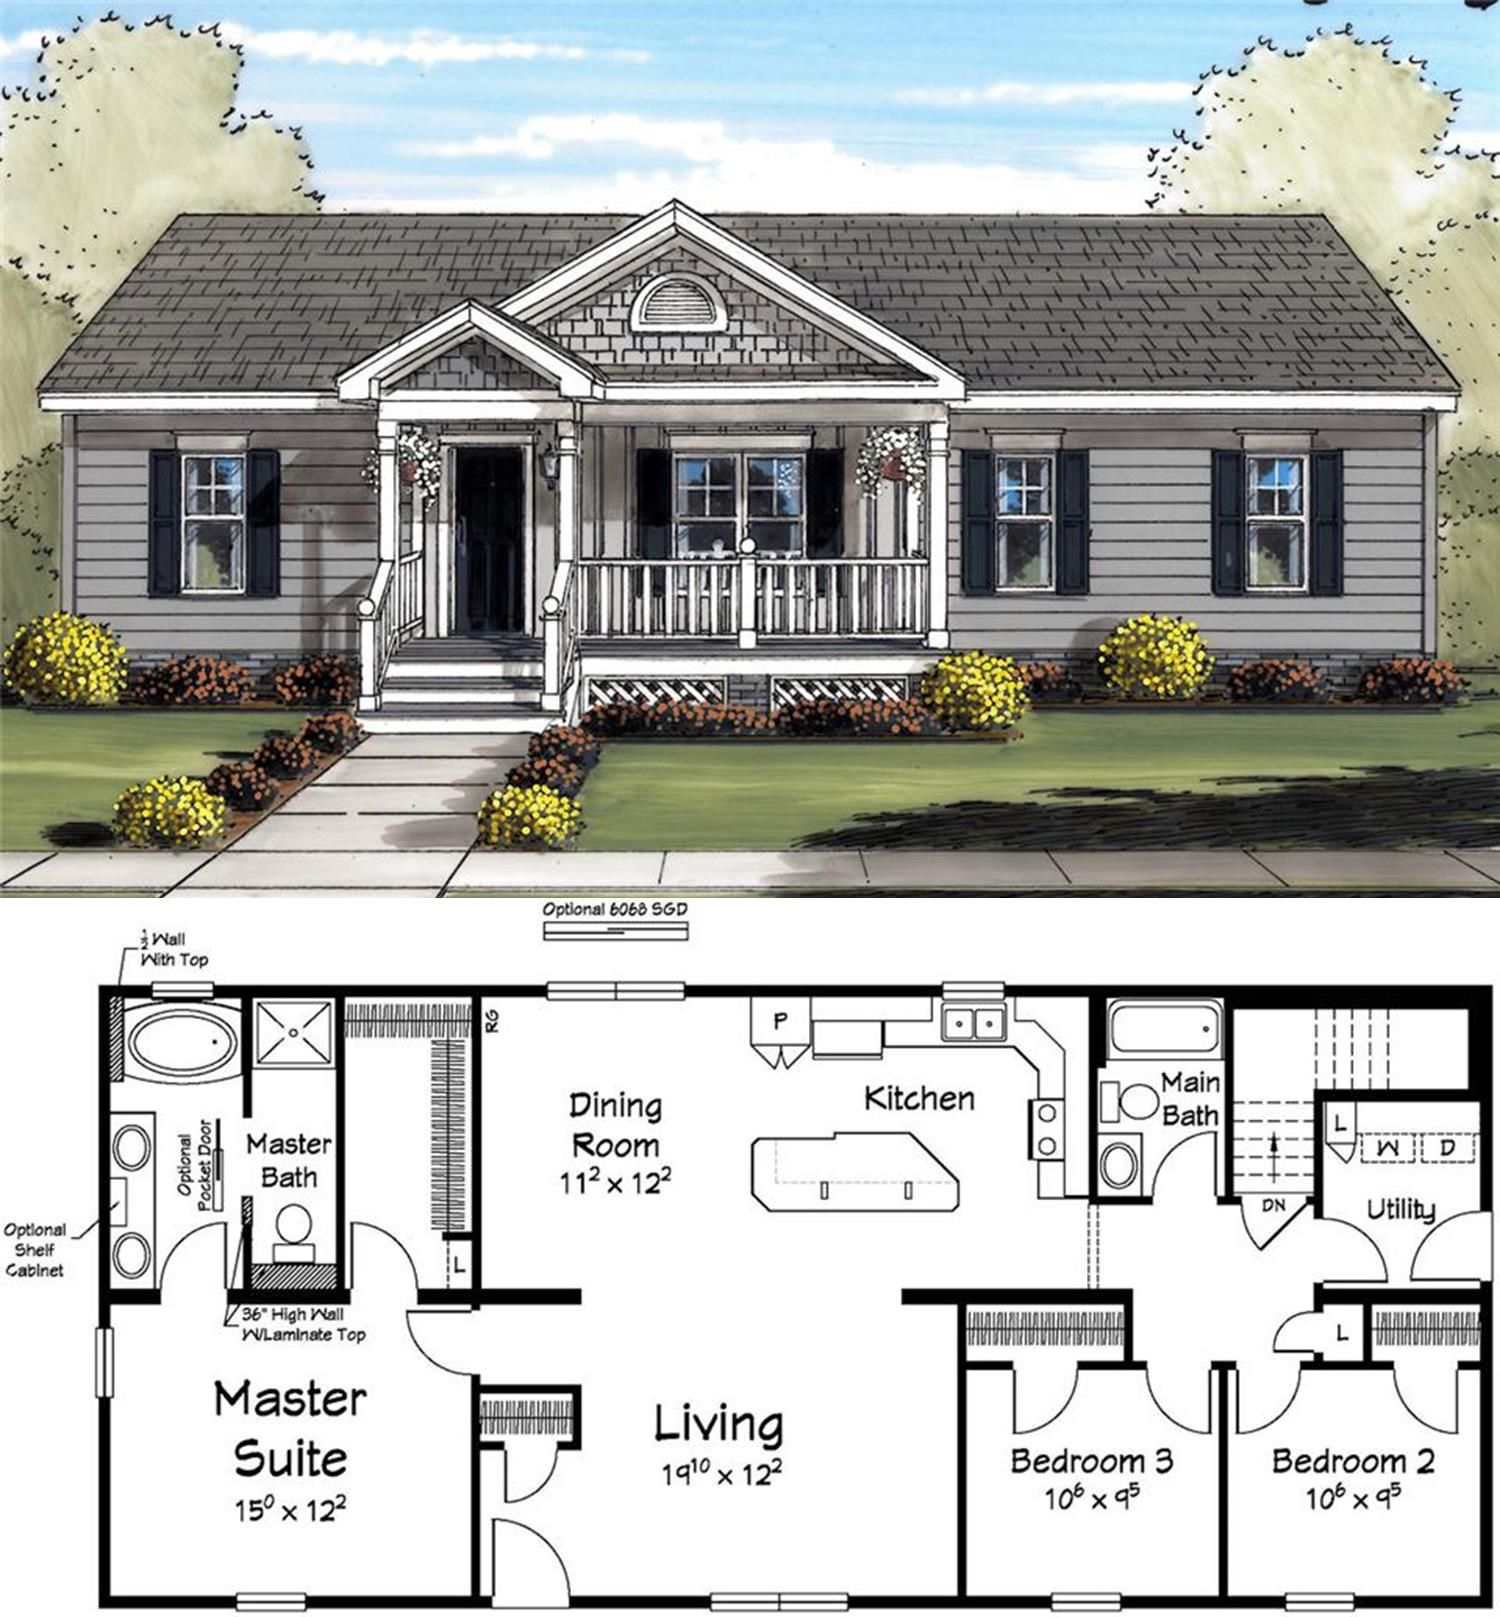 Pin By Luna Drake On Vacation Home Sims House Plans New House Plans Dream House Plans